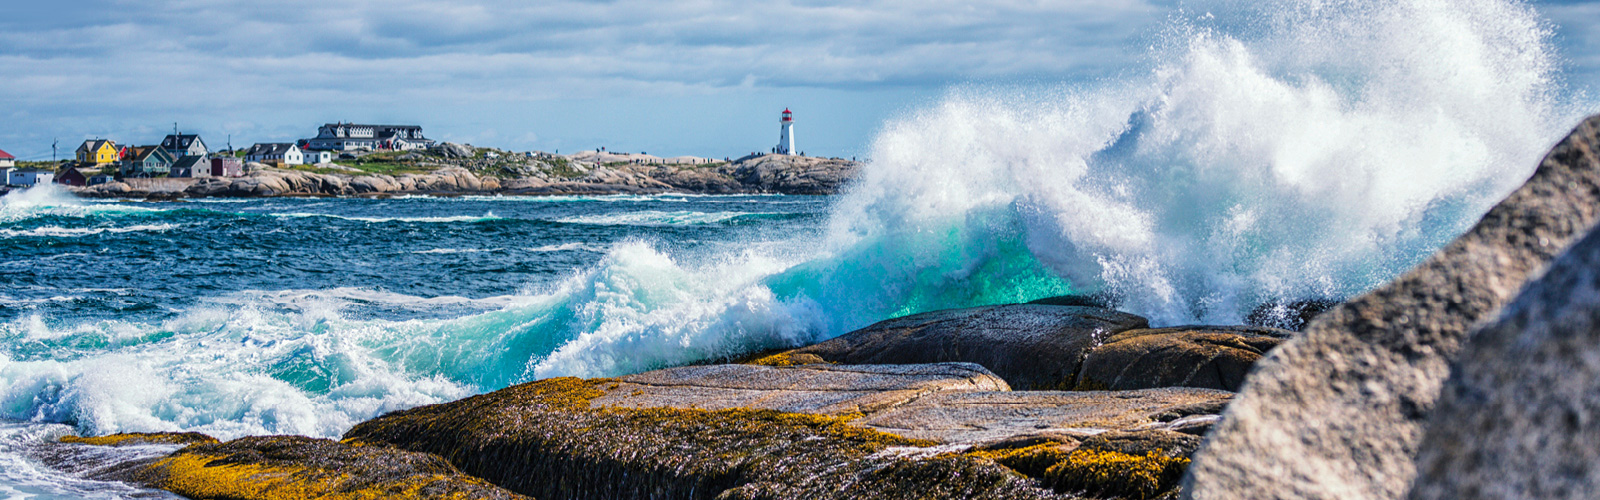 light house with waves on a rock